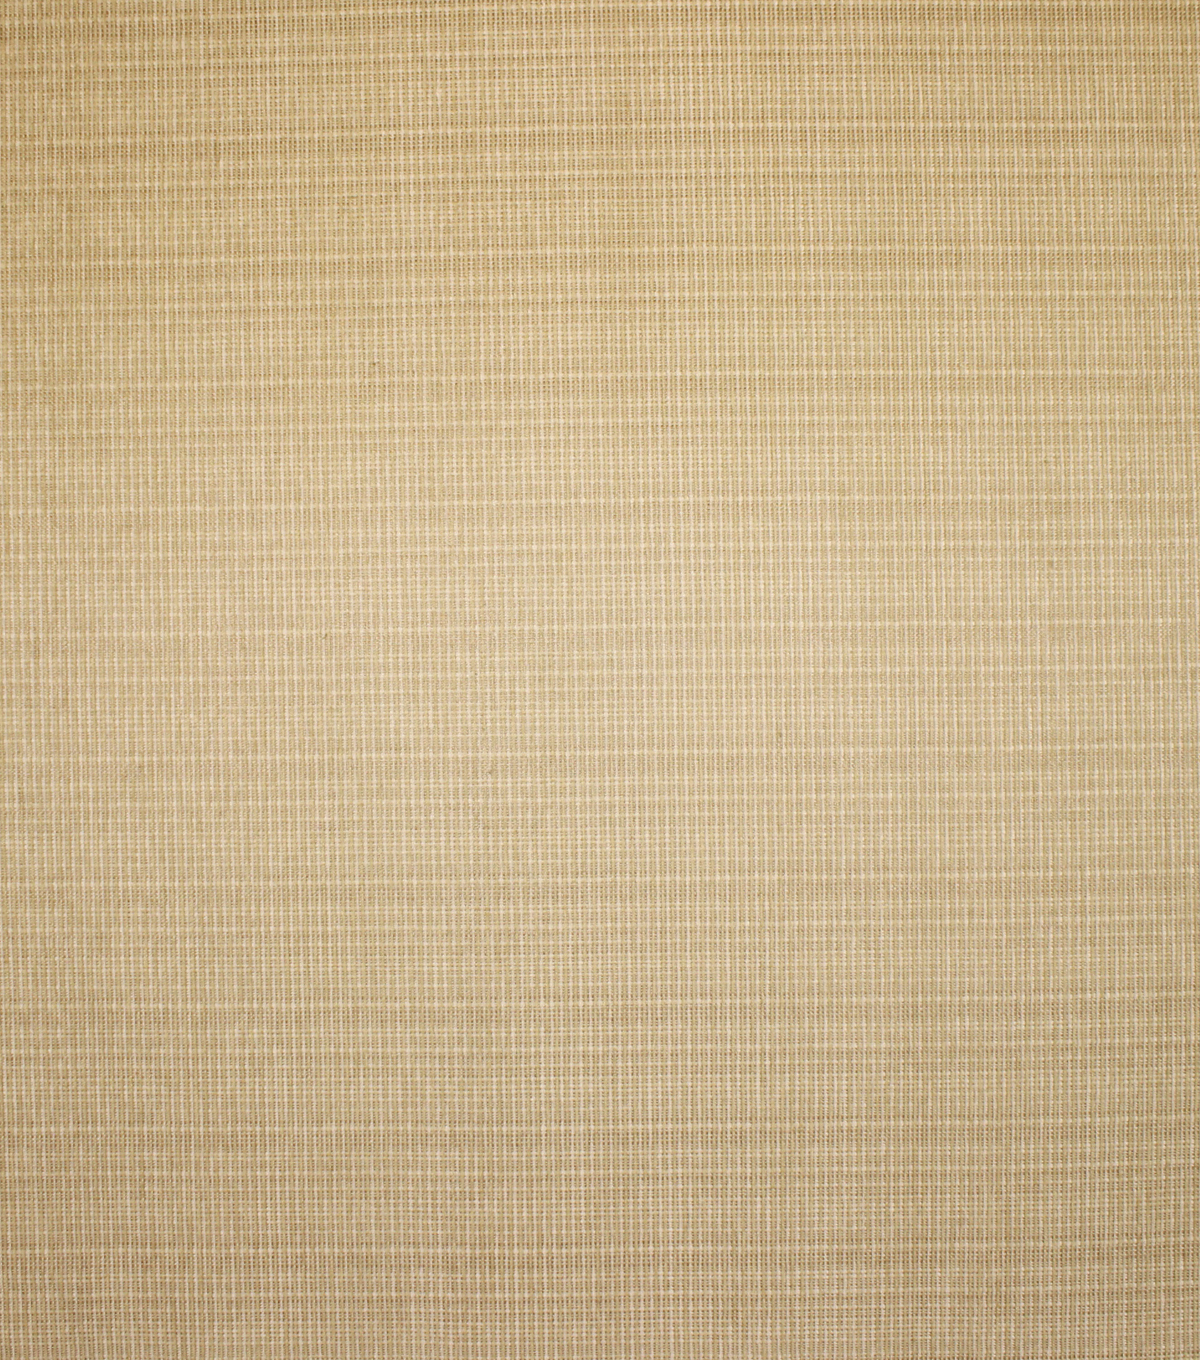 Home Decor 8\u0022x8\u0022 Fabric Swatch-Upholstery Fabric Barrow M8667-5850 Natural